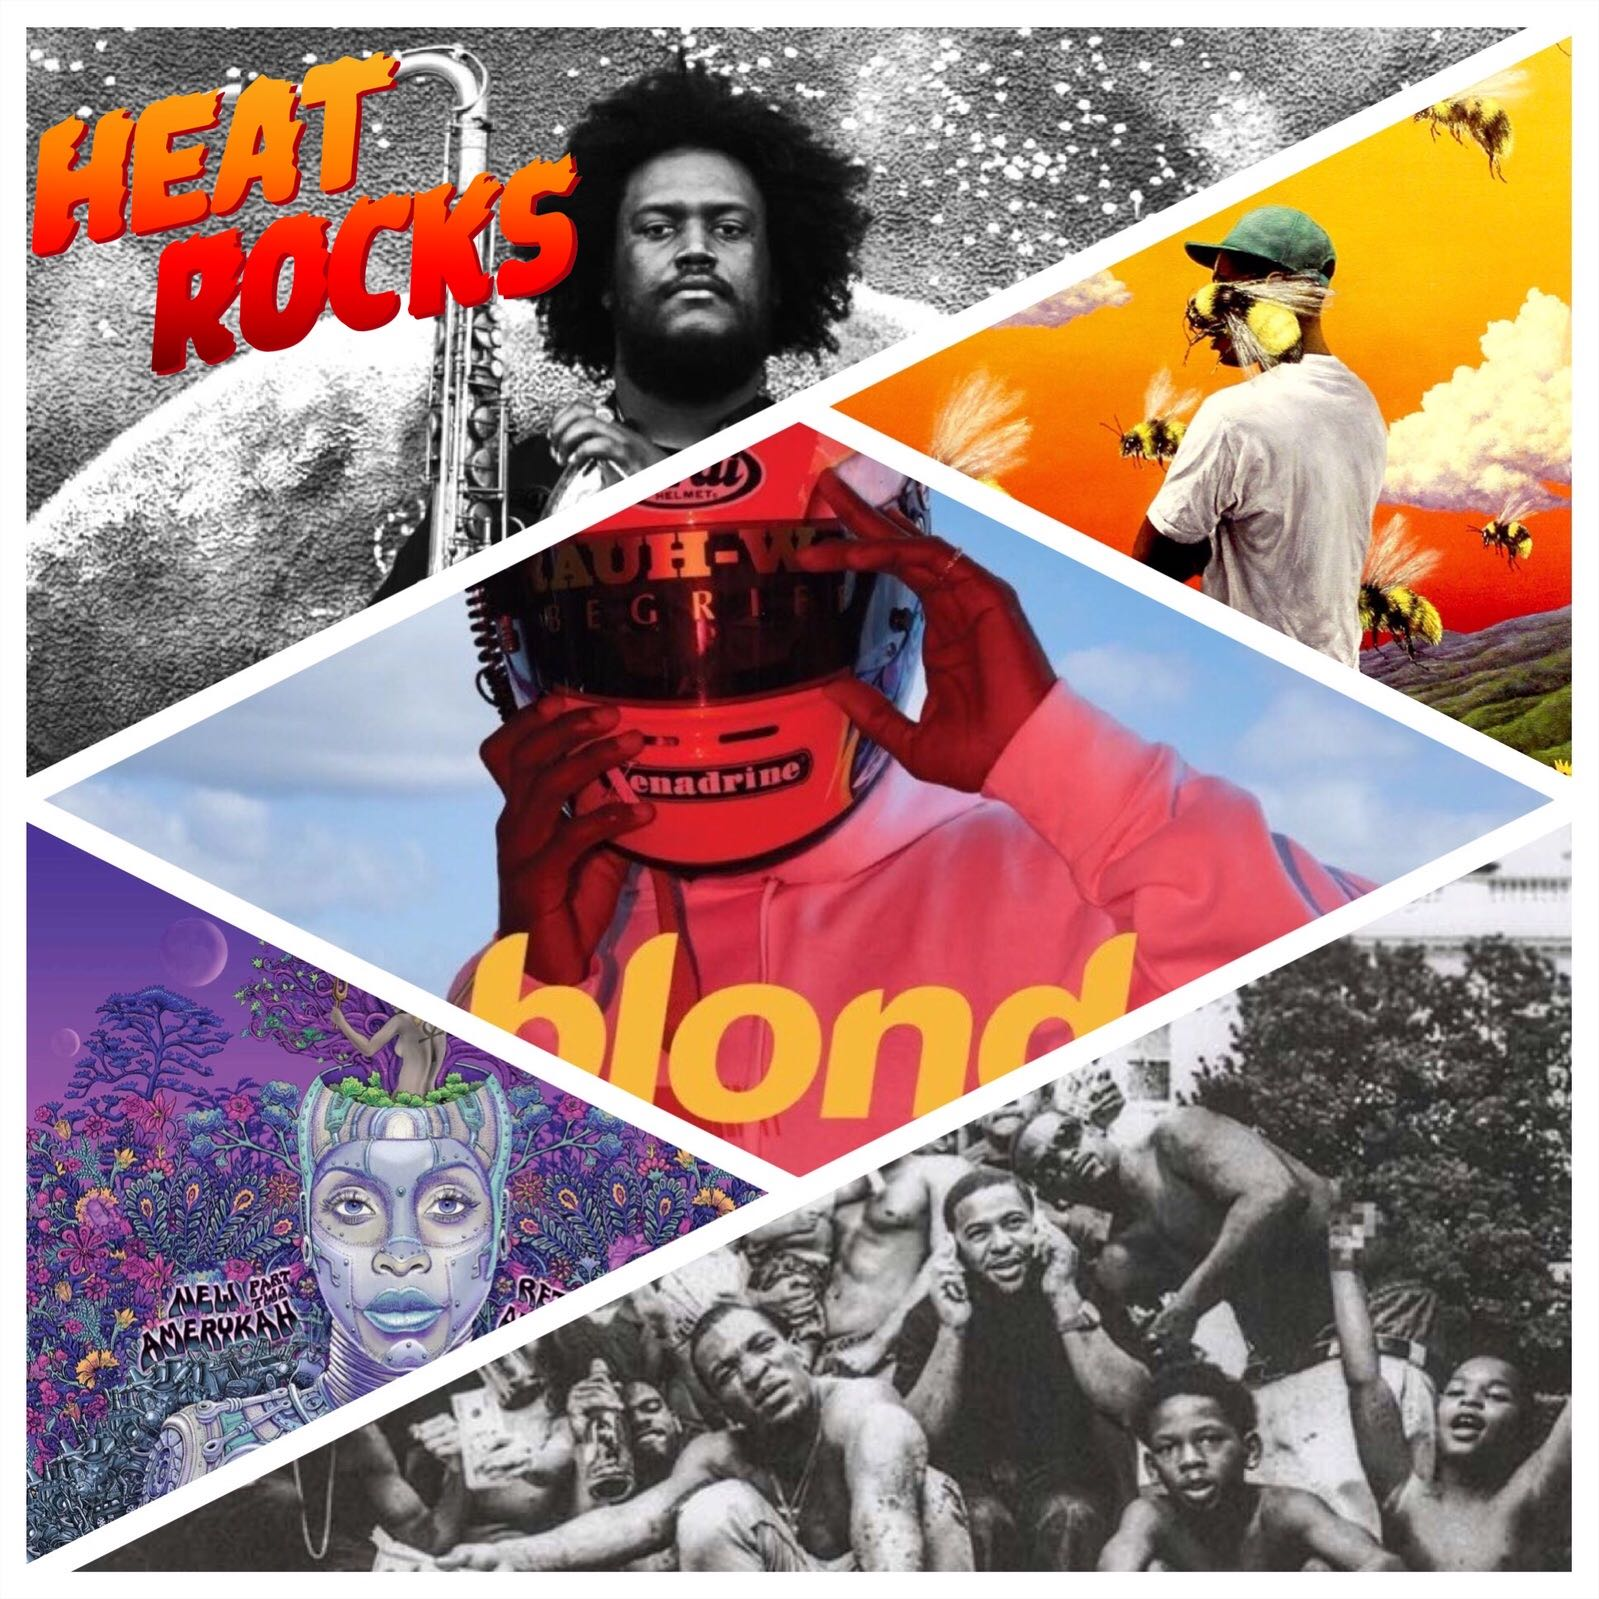 A compilation of the album art of several different albums